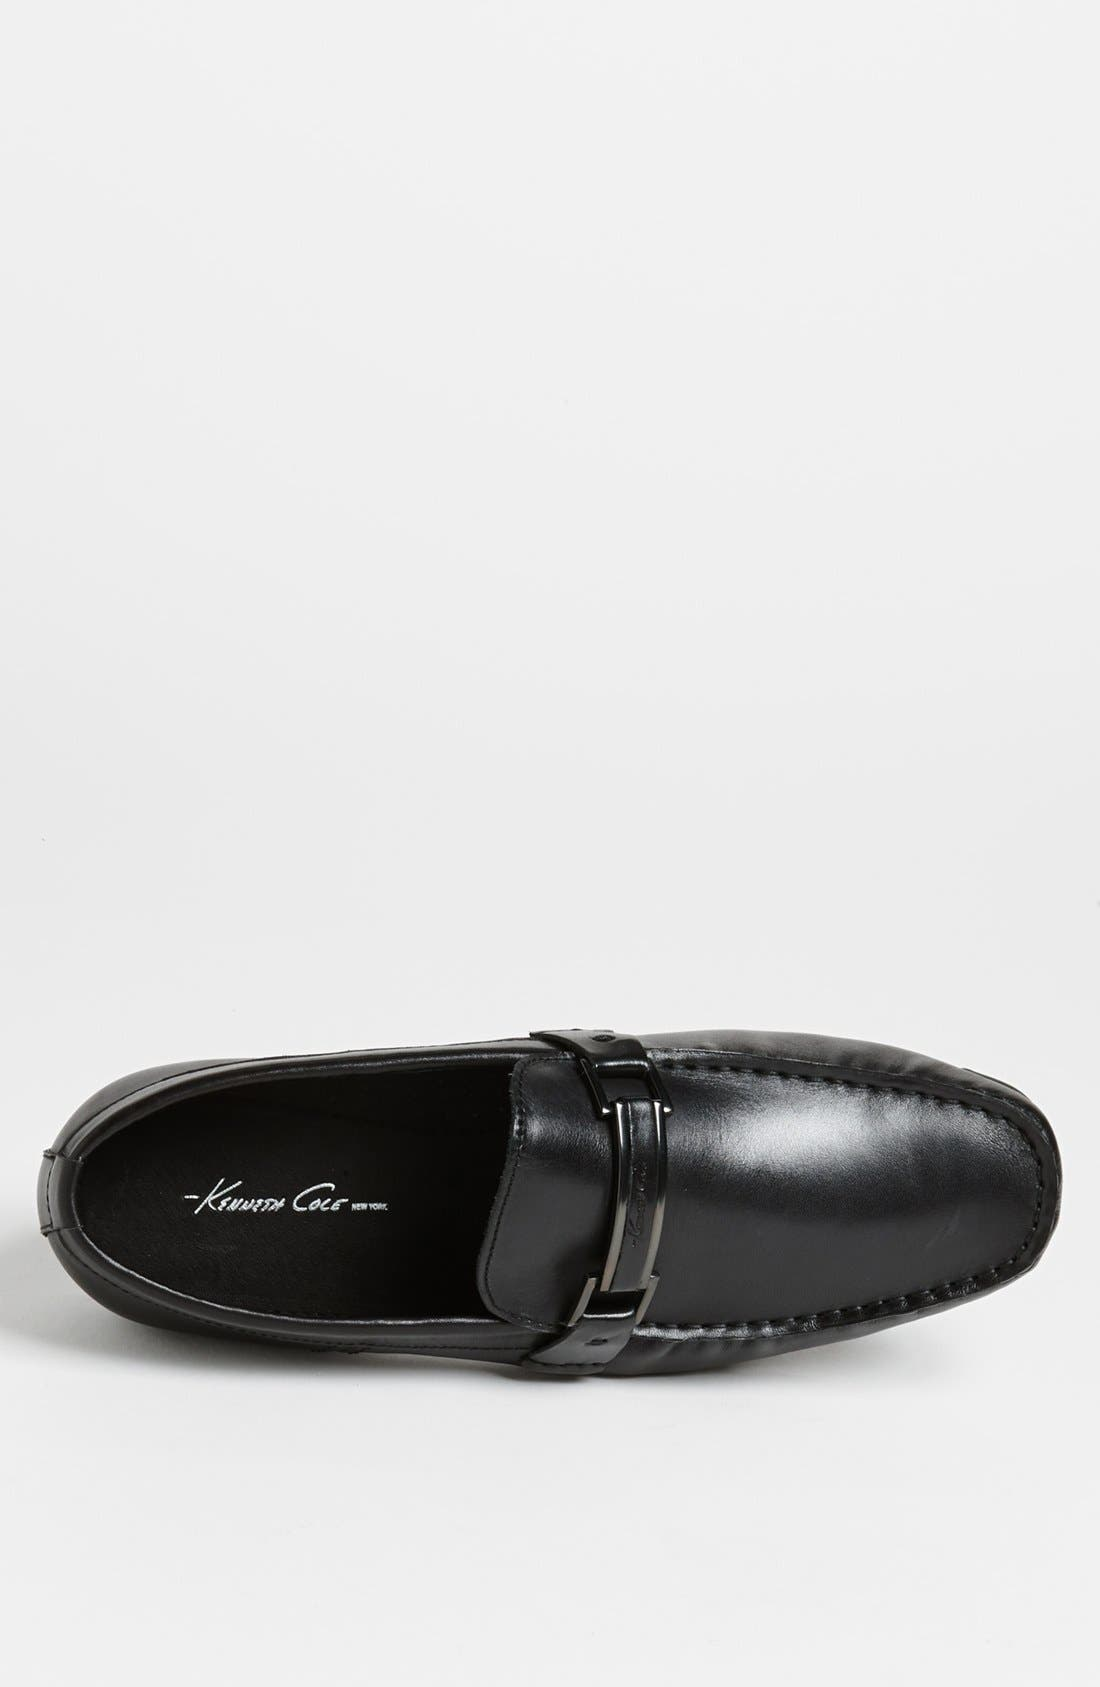 Alternate Image 3  - Kenneth Cole New York 'Private Is-Land' Loafer